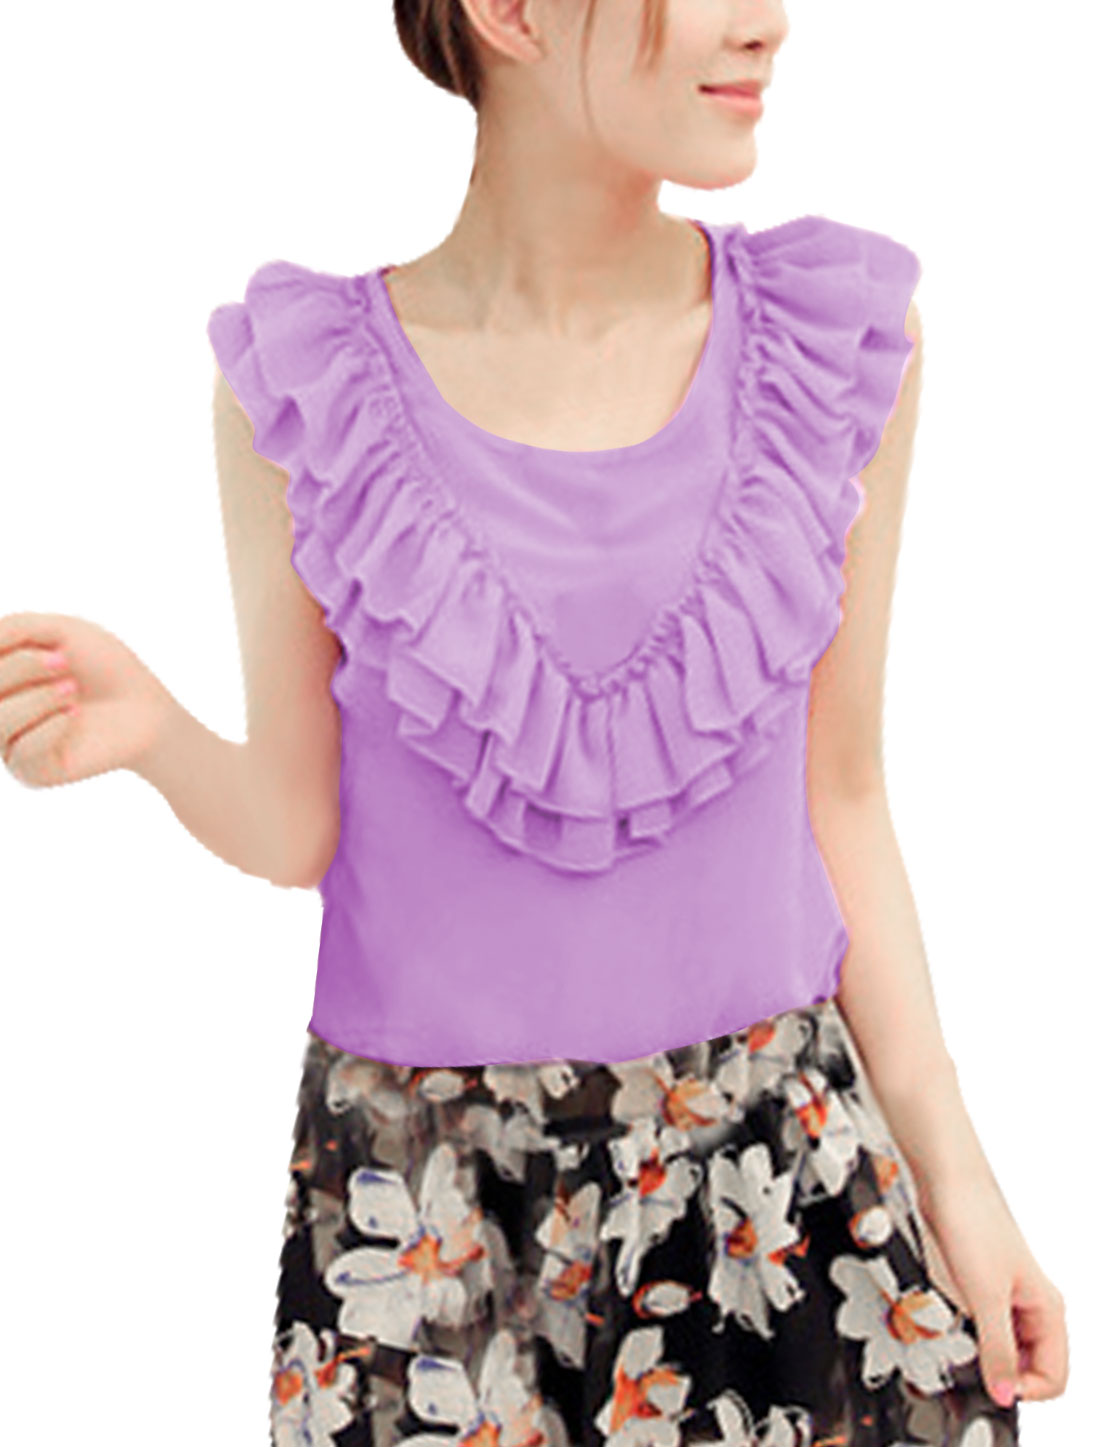 Women Chiffon Sleeveless Solid Color Fashion Hot Shirt Lavender S